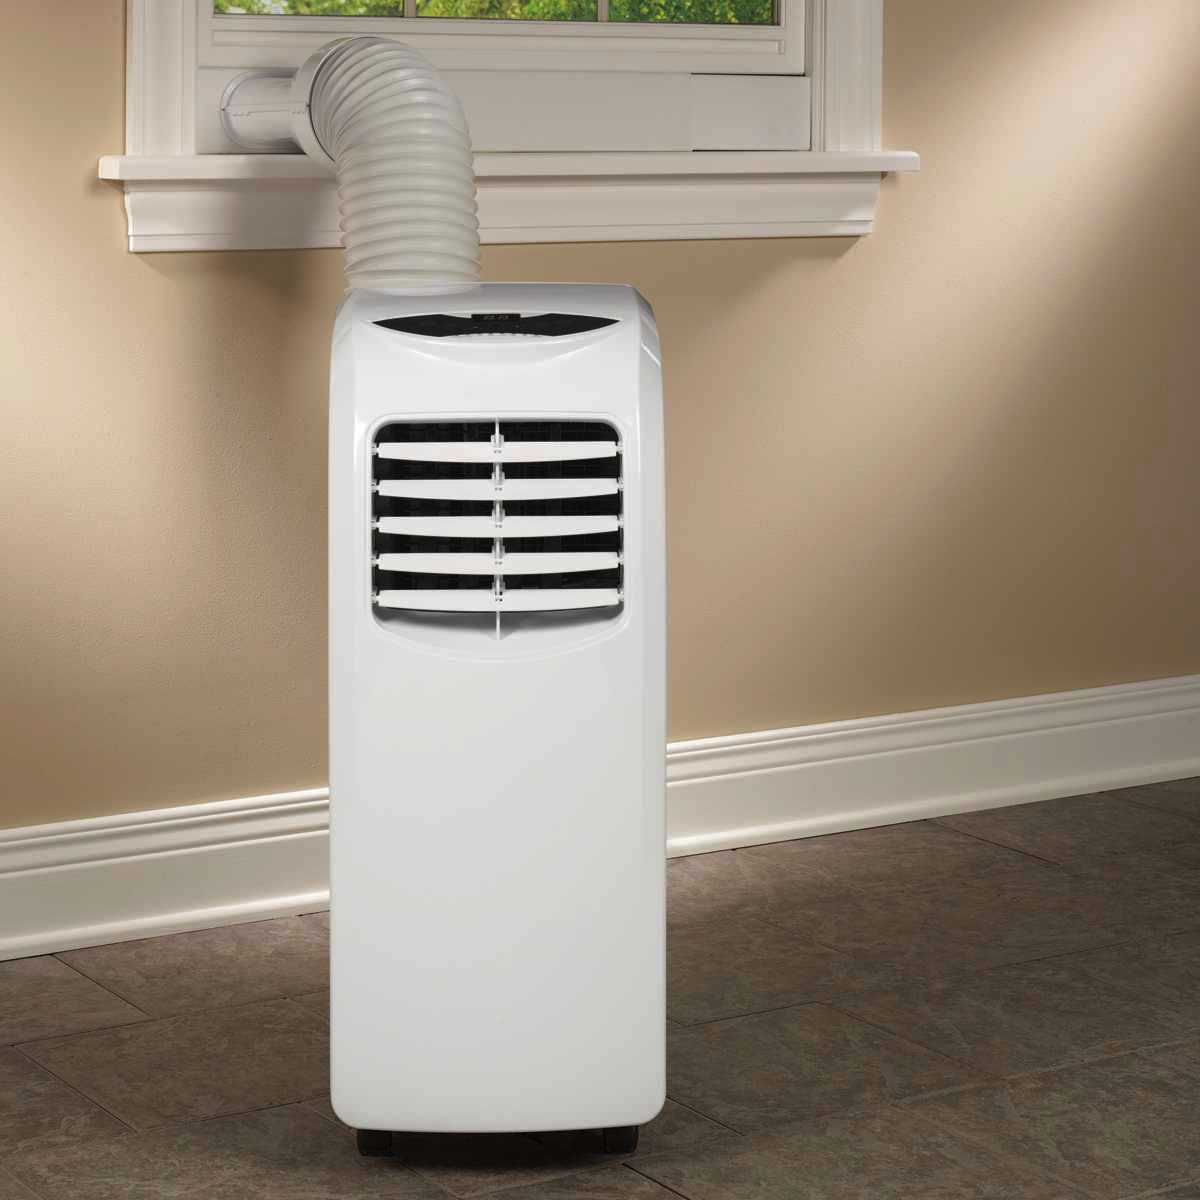 A Small Air Conditioner For Room Under The Window Portable Air